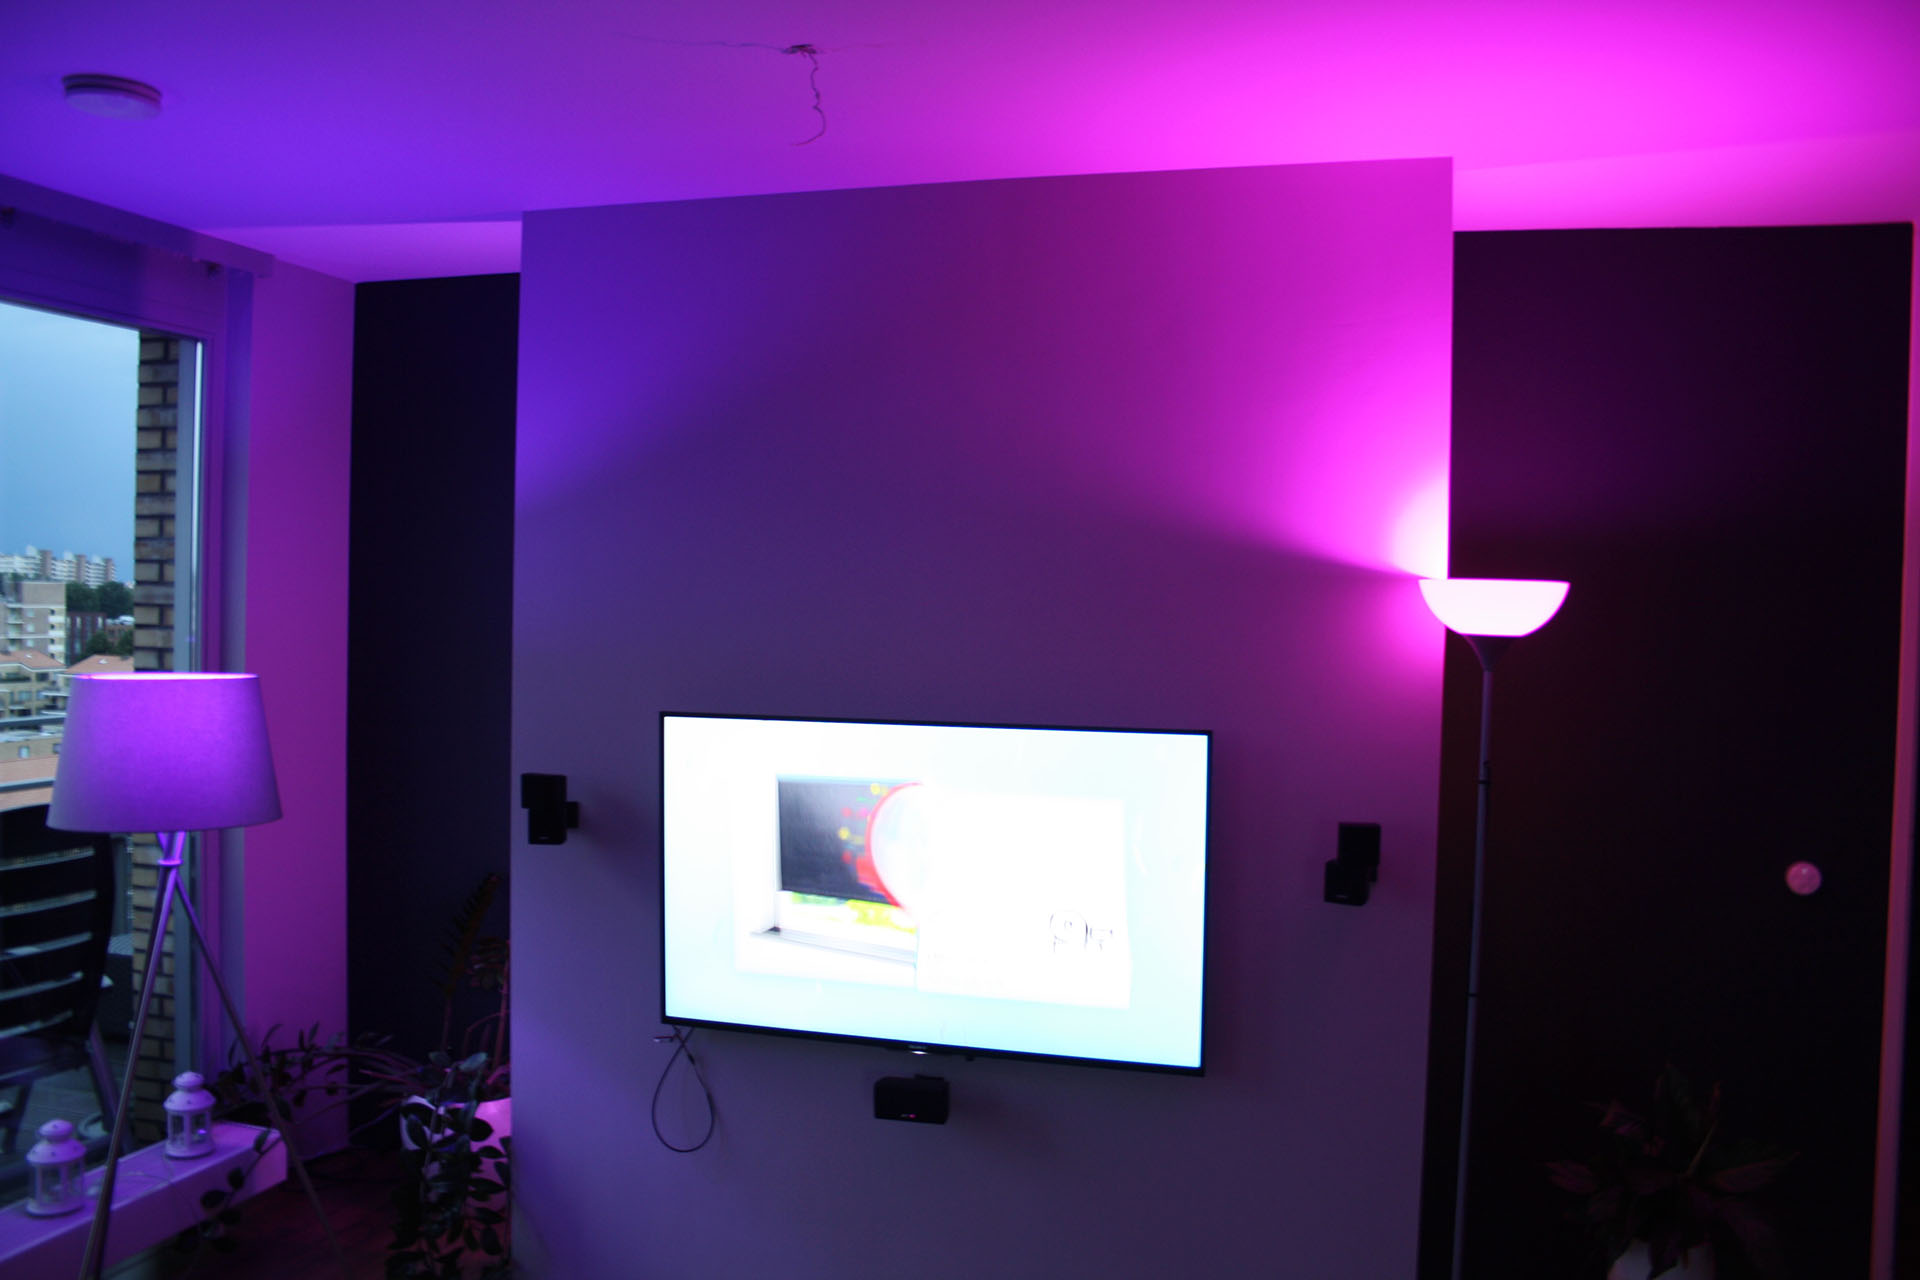 Verlichting in kleur  Philips Hue  Domotica Center